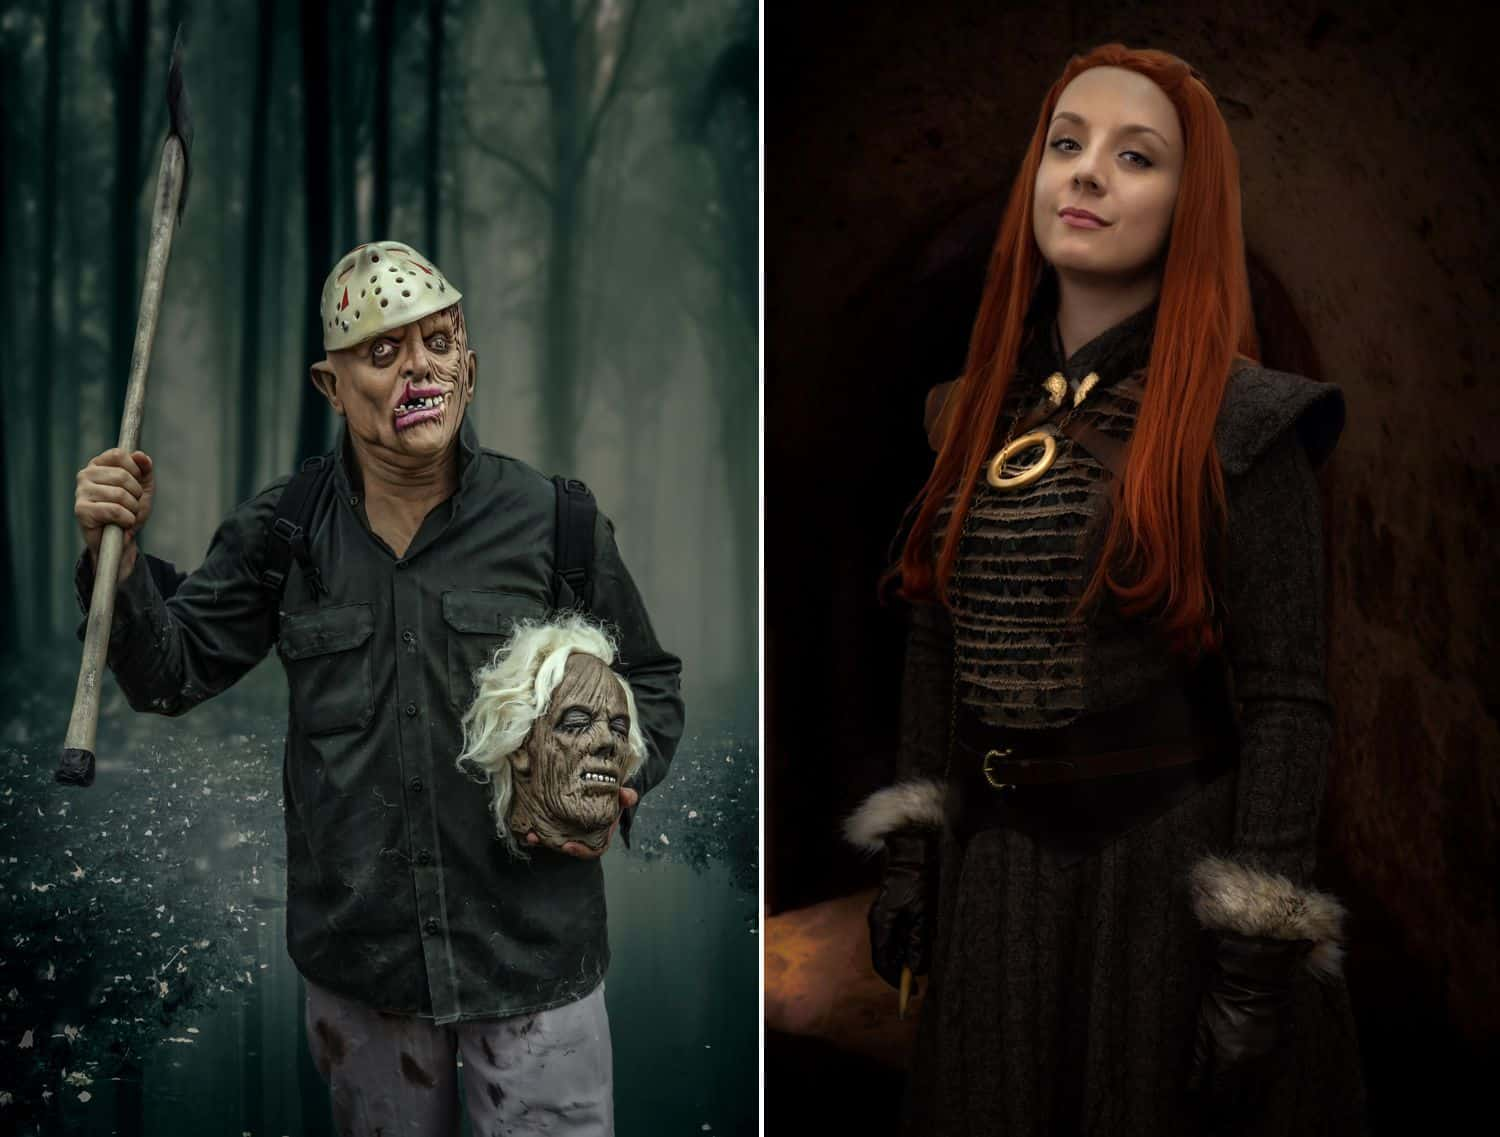 41 Fascinating Photos That Will Inspire More Powerful Portraits: Cosplay Photographer Joe Alfano